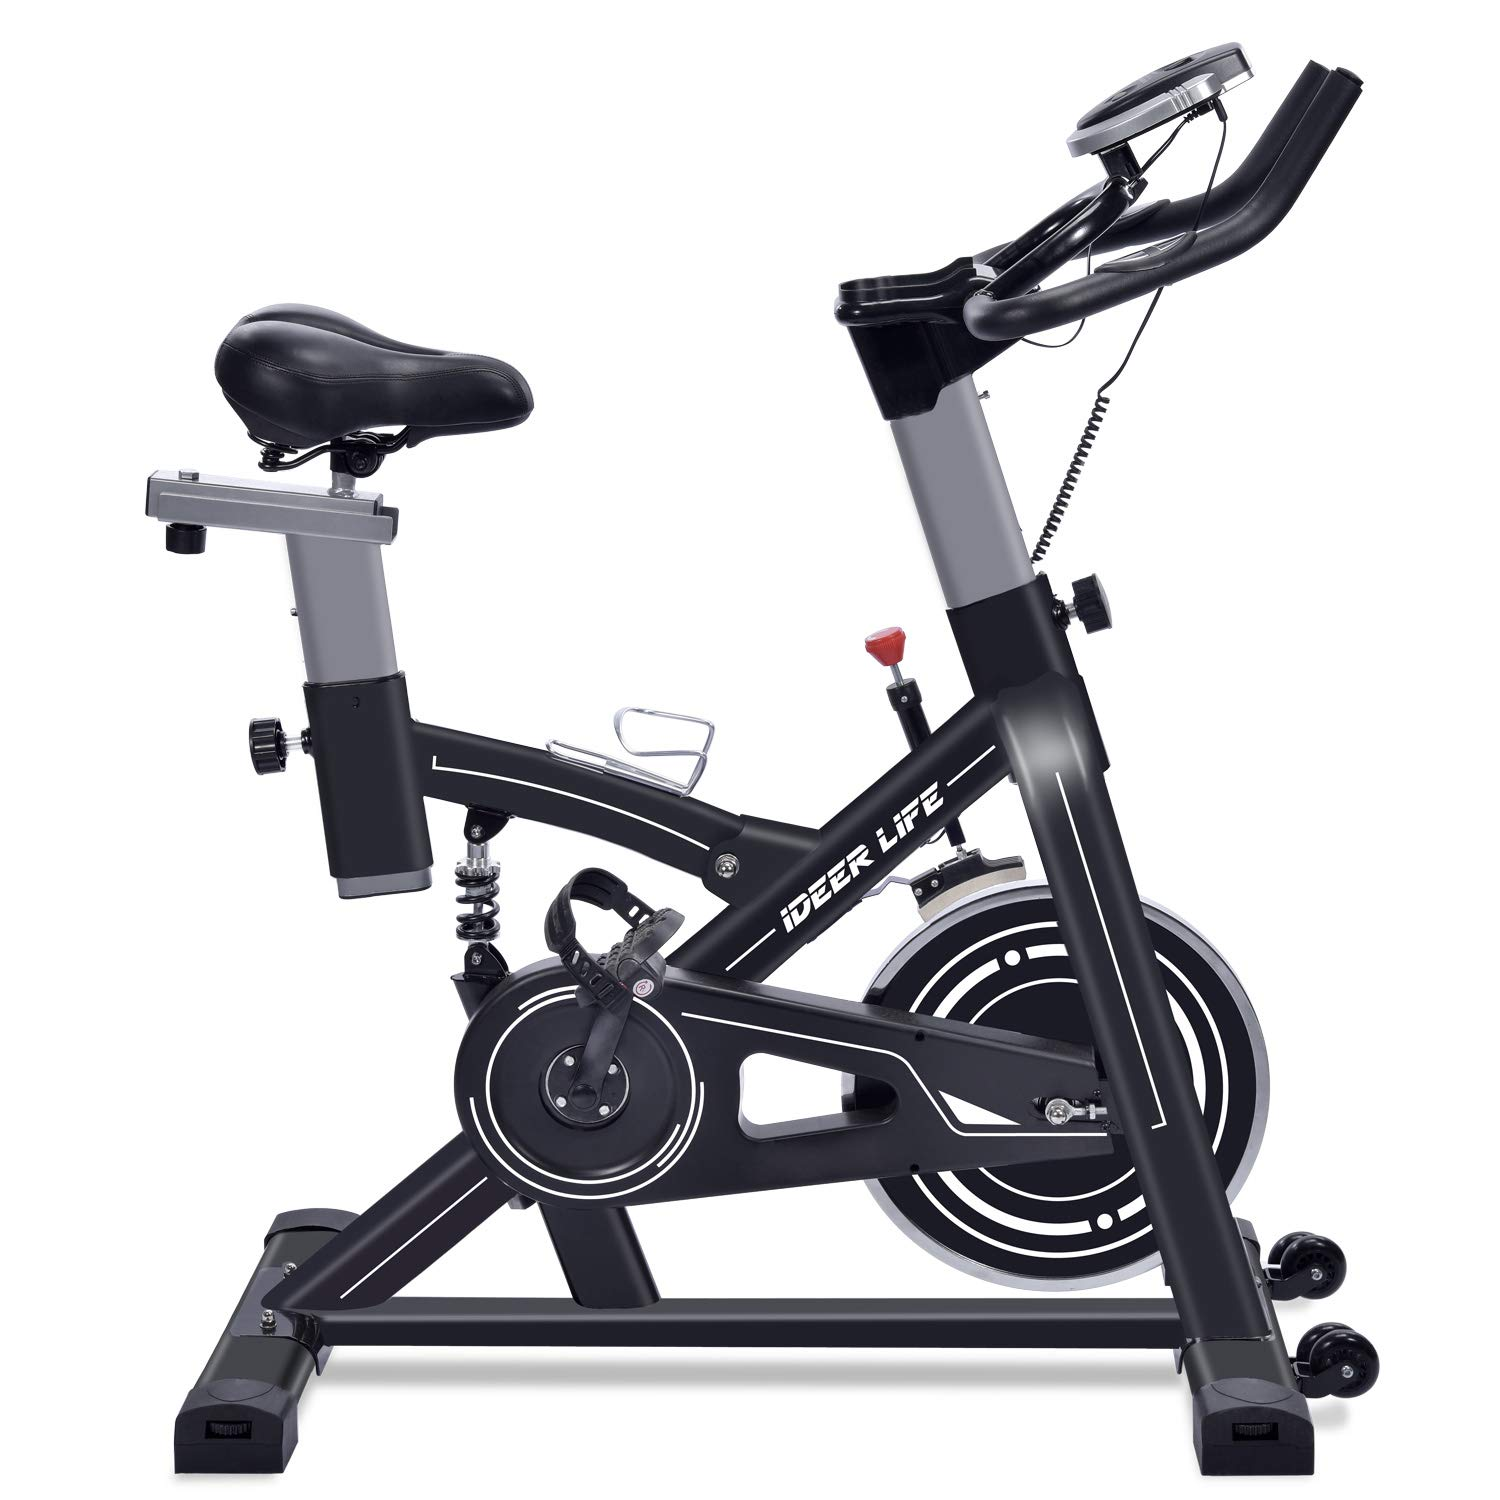 IDEER LIFE Exercise Bike Indoor Cycling Stationary Bike for Home Sport Workout,Adjustable Sport Exercise Bike for Home Indoor Cardio,w/Pulse Sensor&LCD Monitor,Max Capacity:330lb (Black09060)